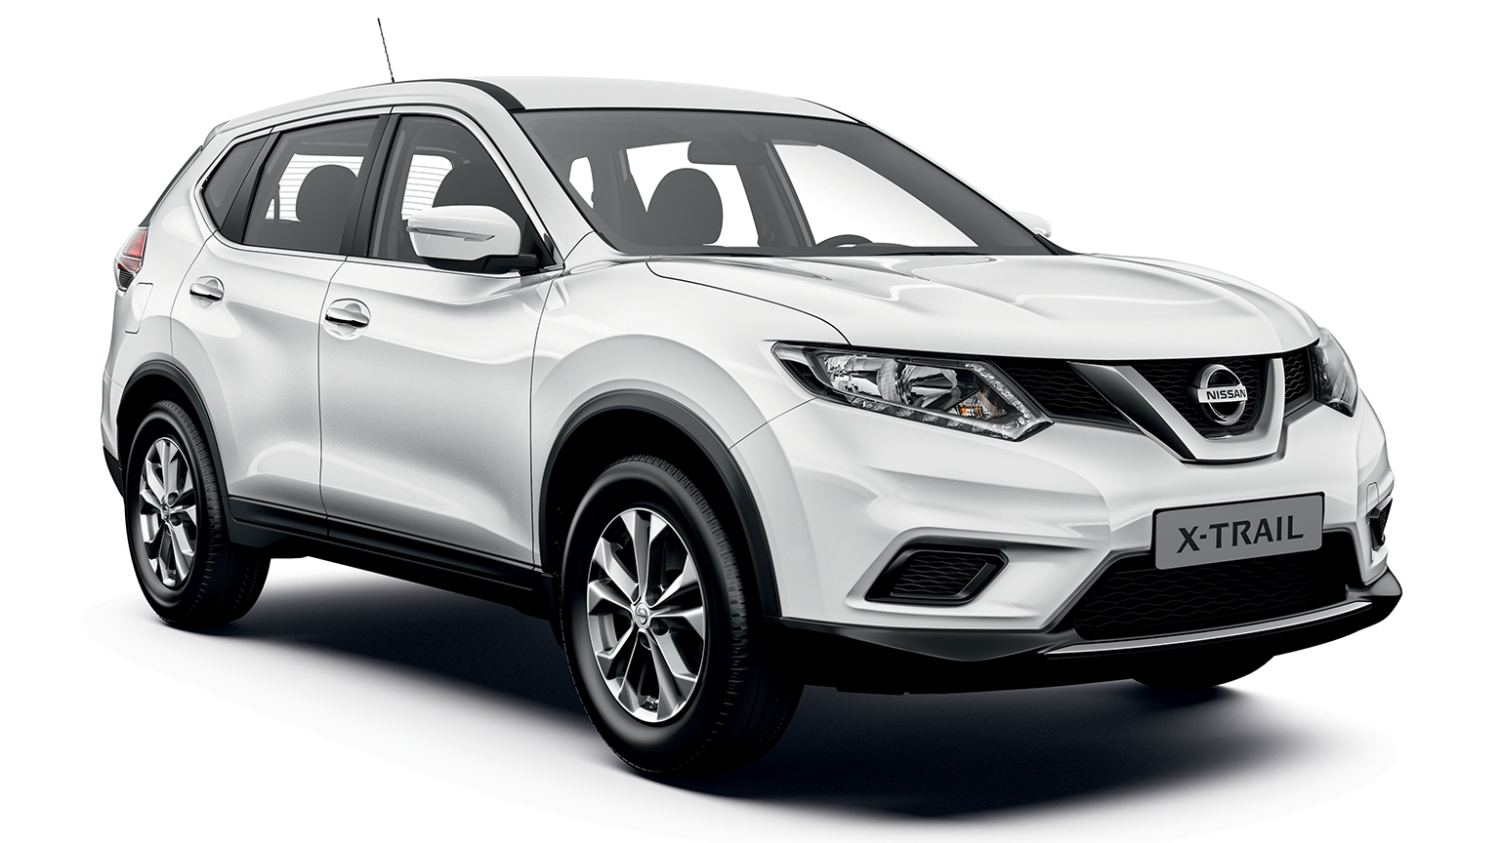 Nissan X-Trail Visia - 3/4 front view